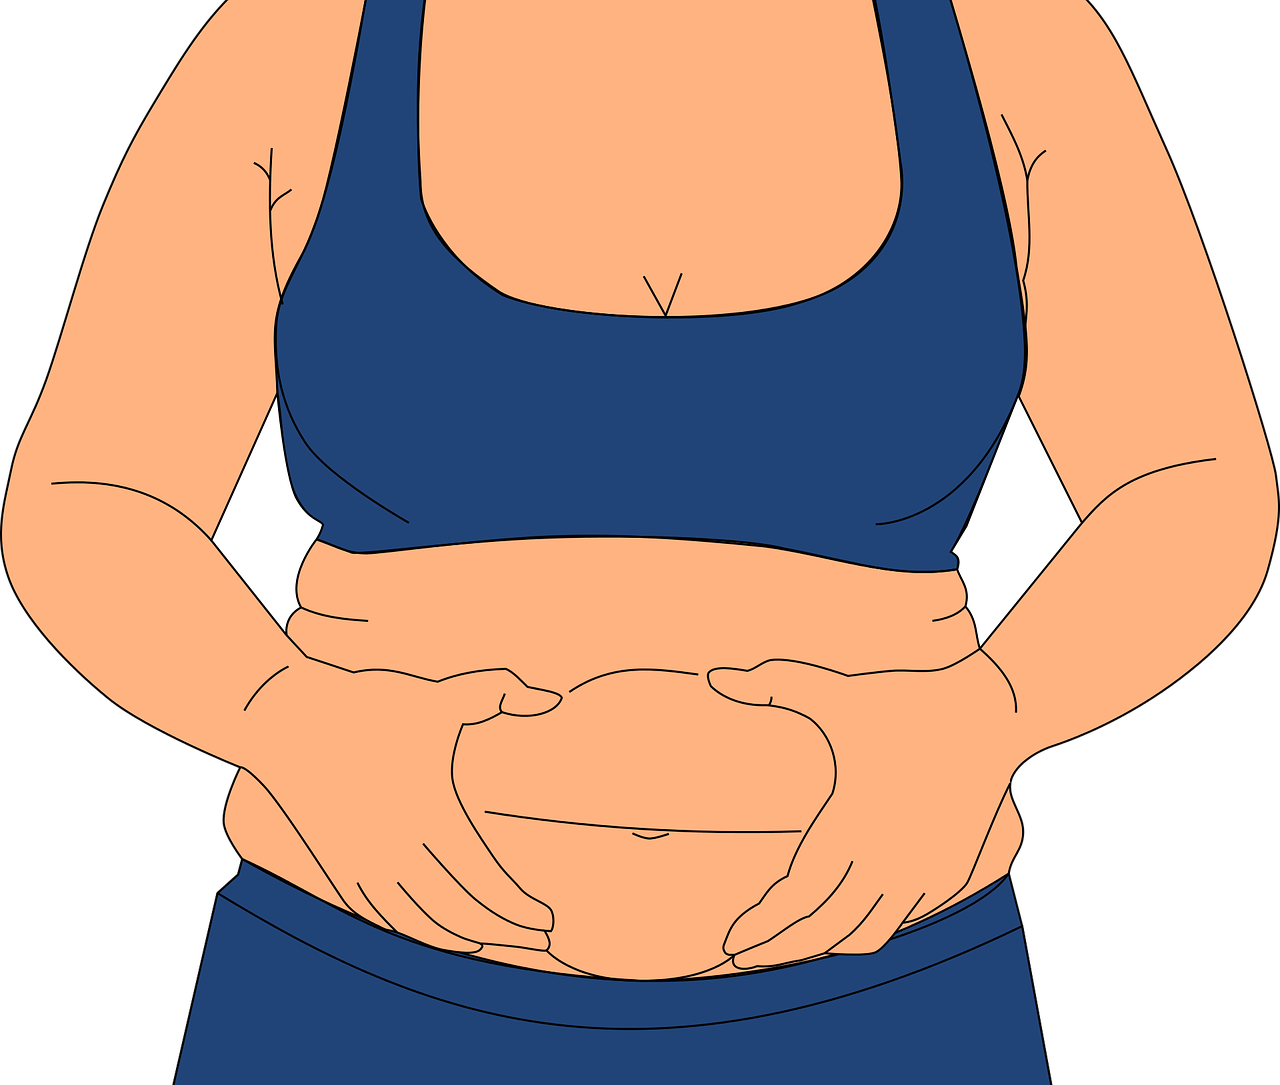 Obesity Fatness Love Handles - Free vector graphic on Pixabay